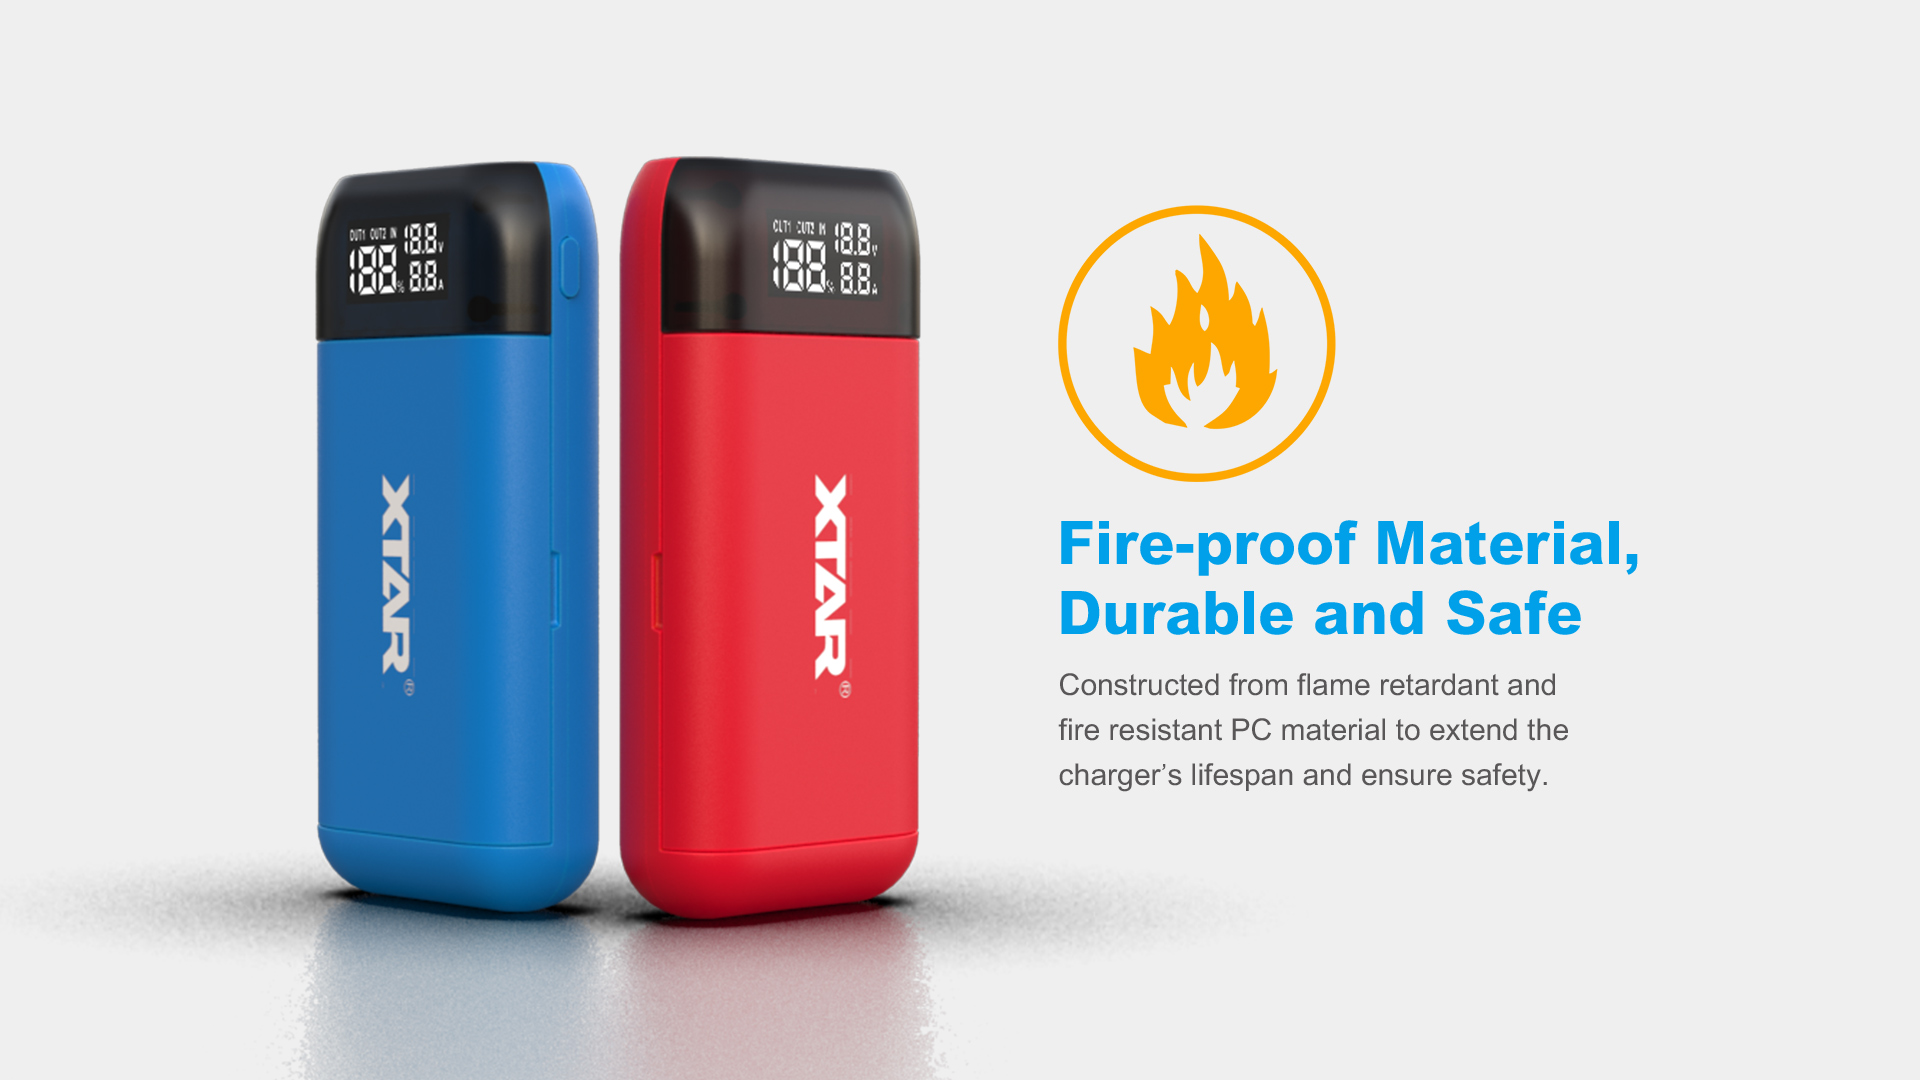 PB2s Powerbank Charger Fire Resistant